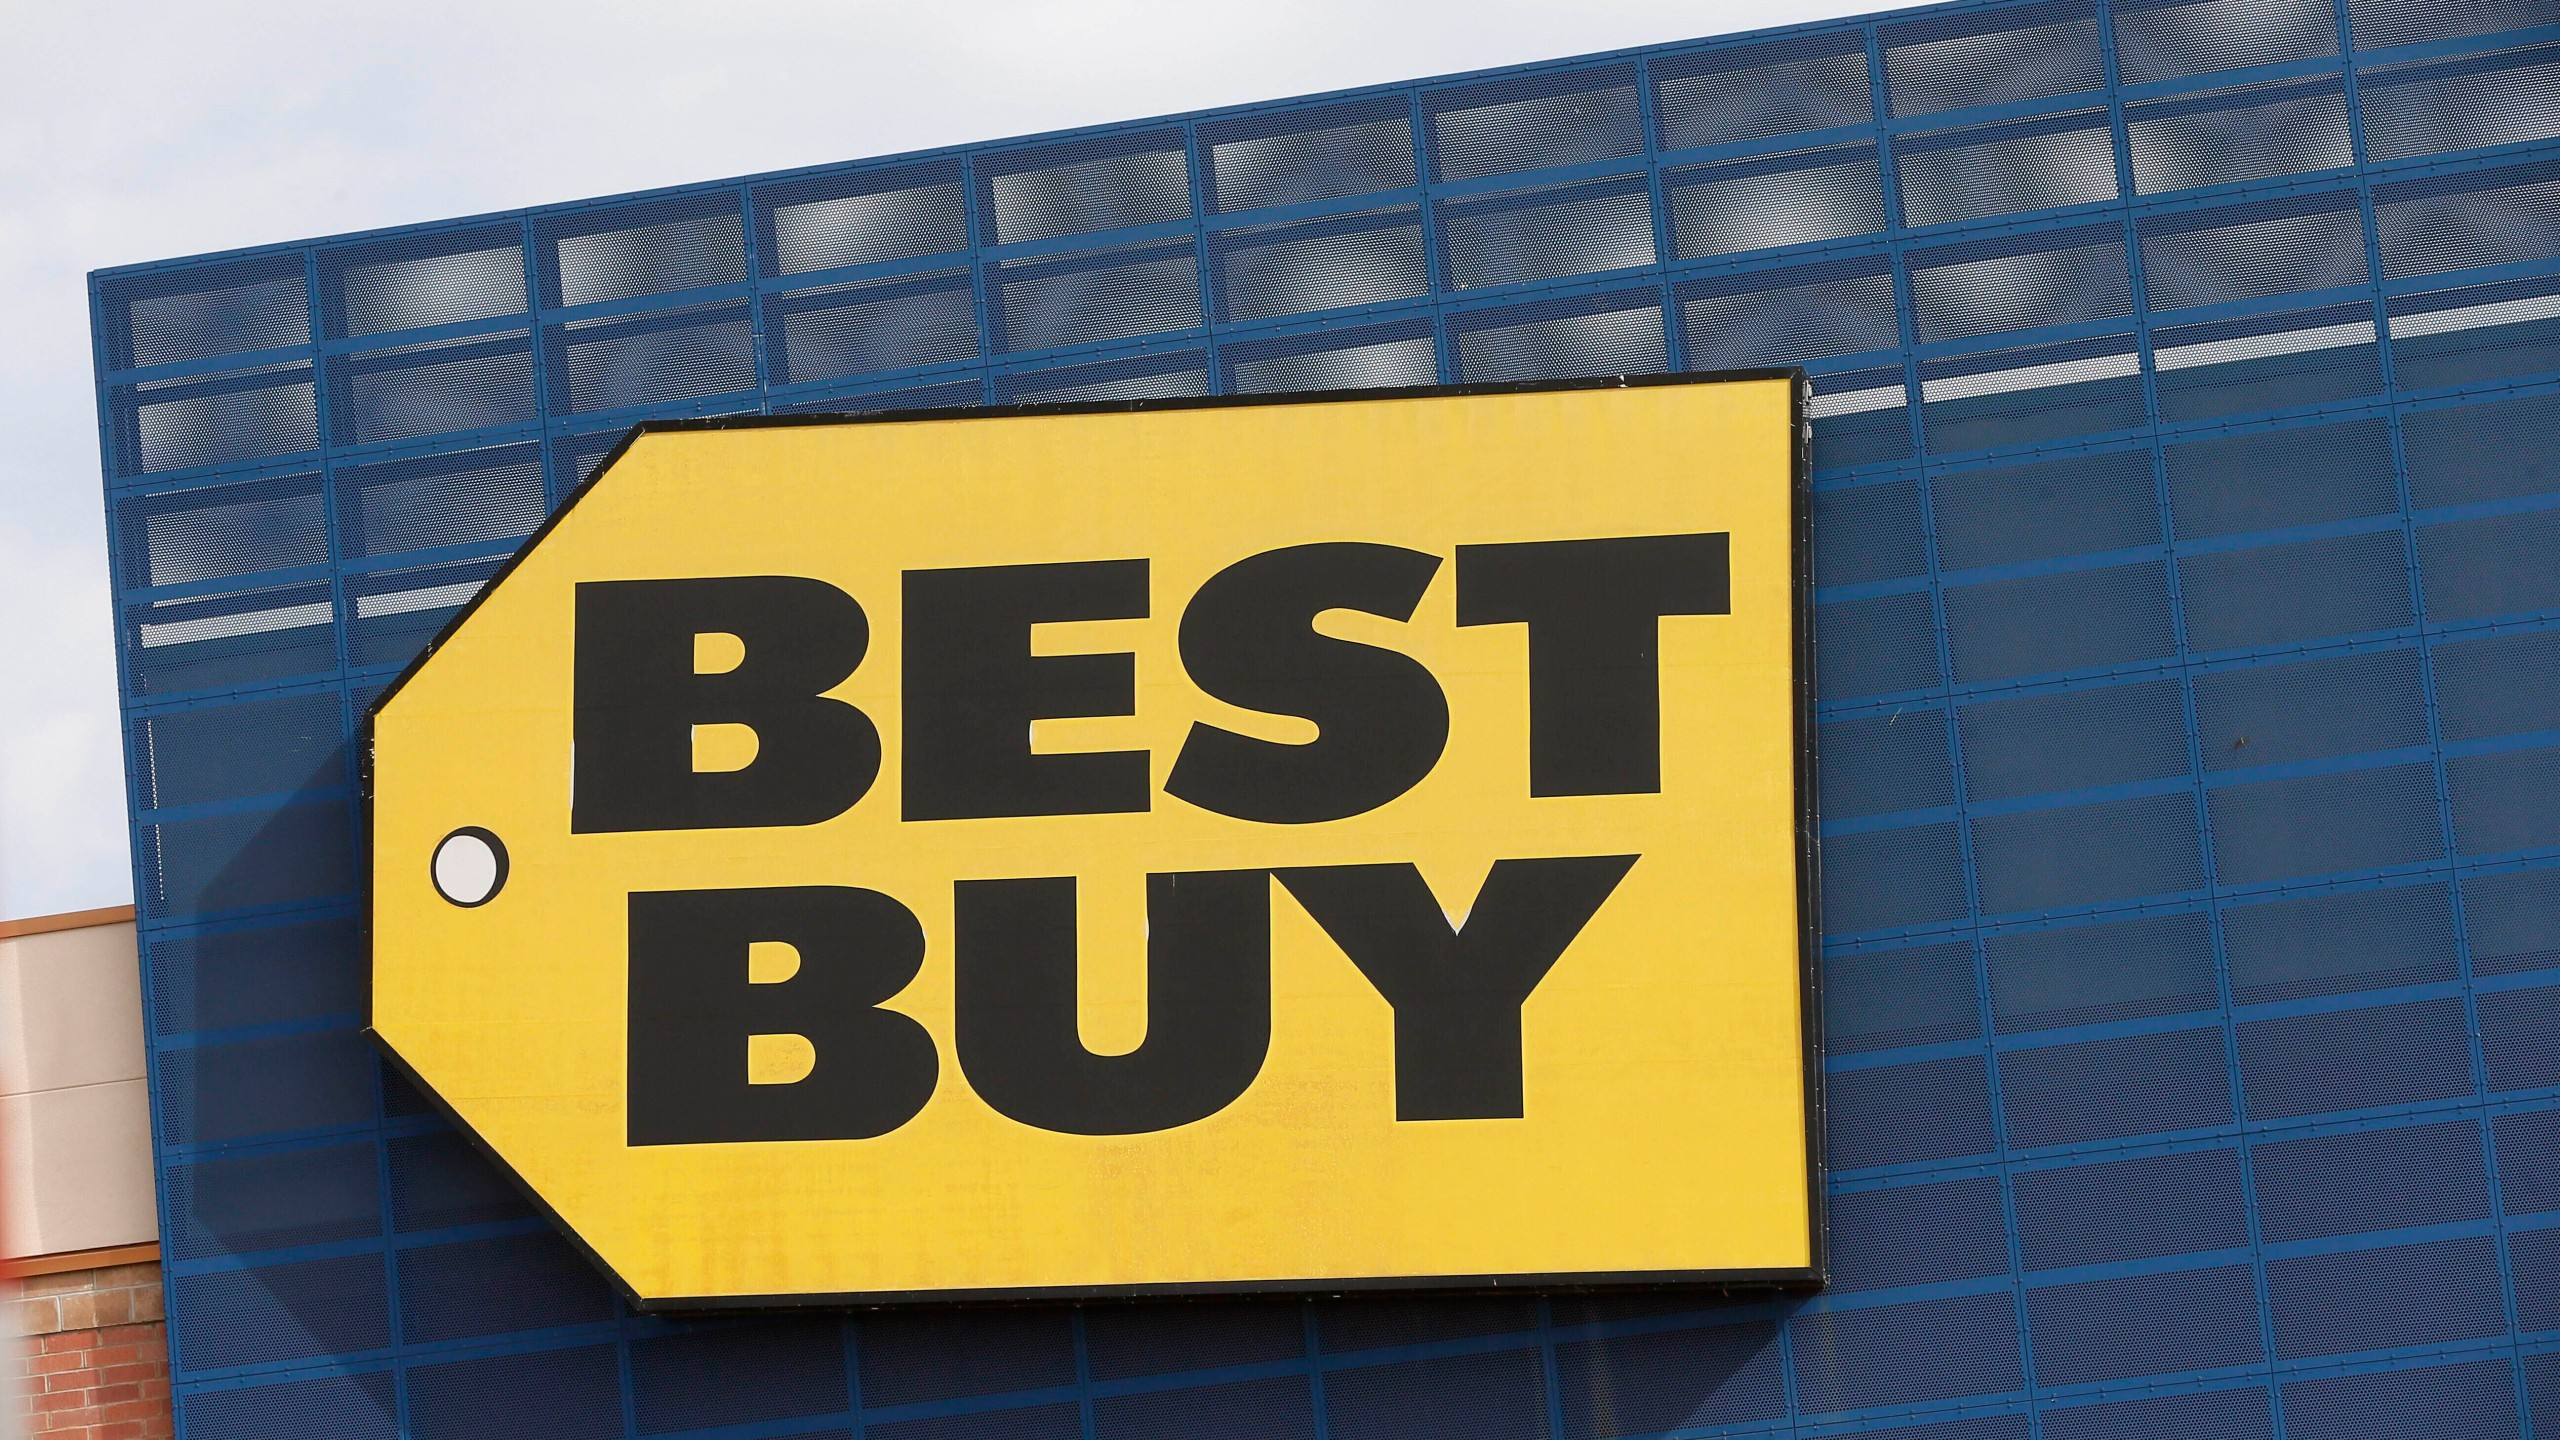 FILE - In this Aug. 27, 2019, file photo, the Best Buy logo is shown on a store in Richfield, Minn. (AP Photo/Jim Mone, File)